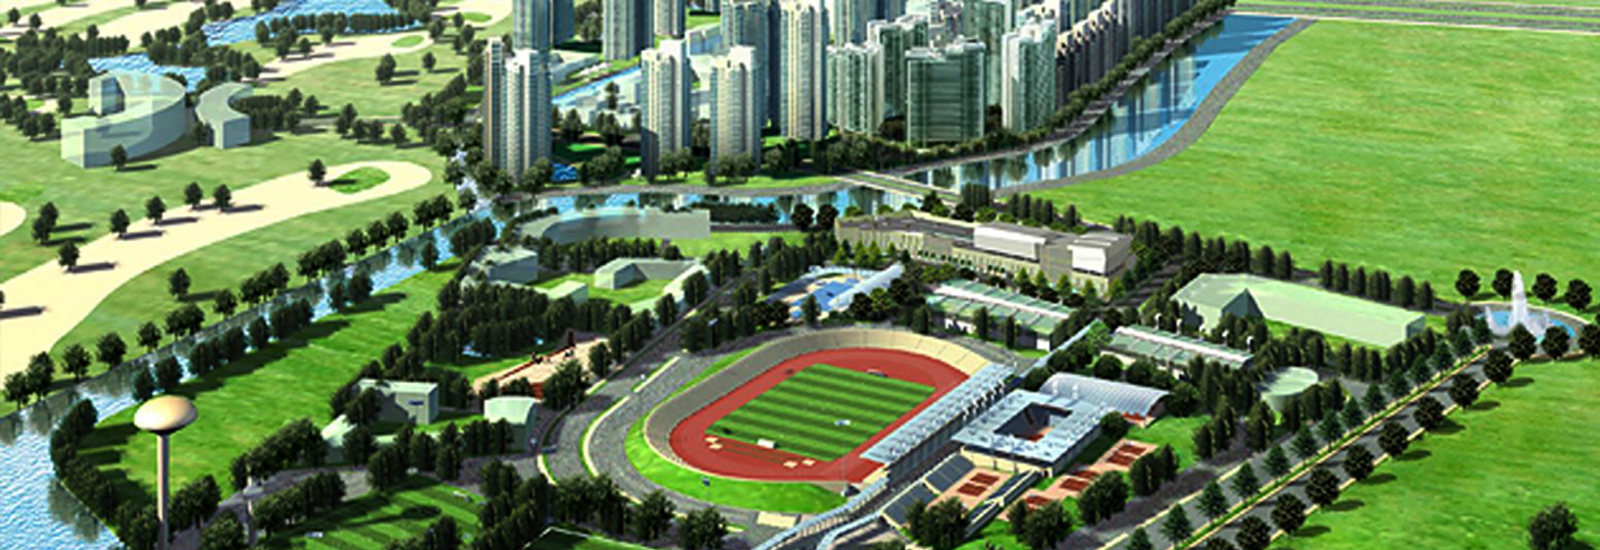 Căn hộ Saigon Sports City